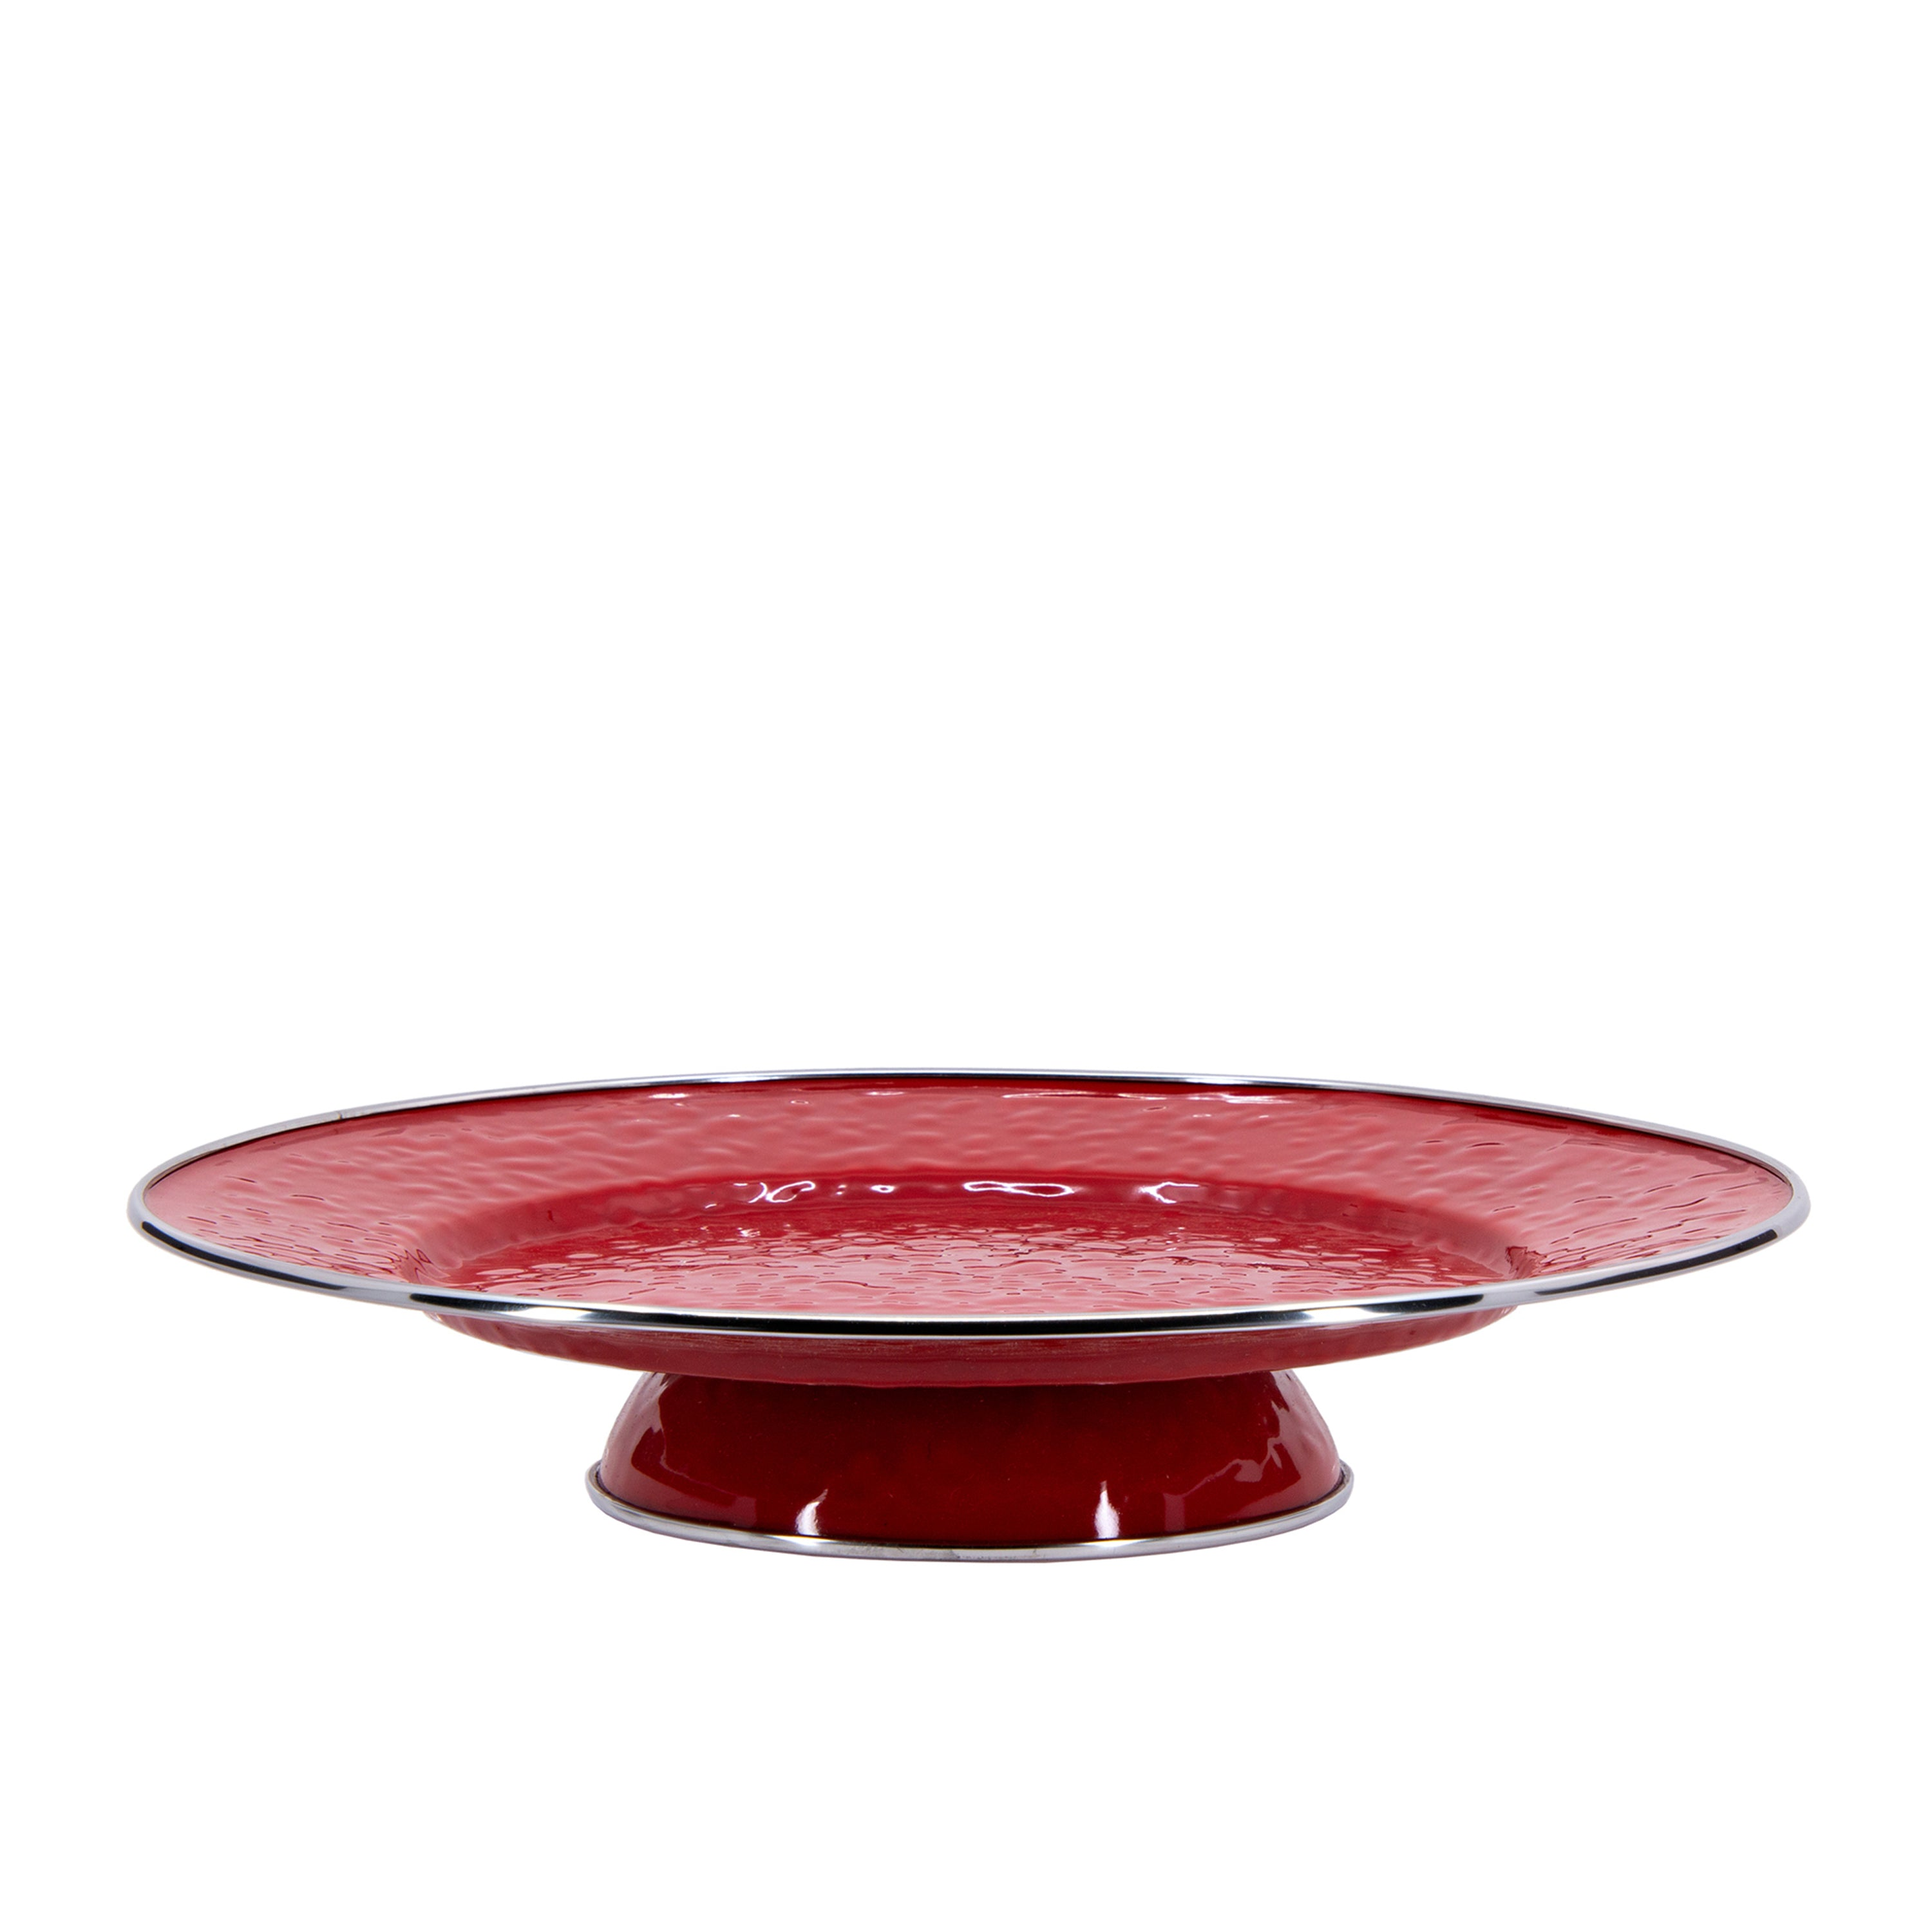 RR76 - Solid Red Cake Plate Image 1